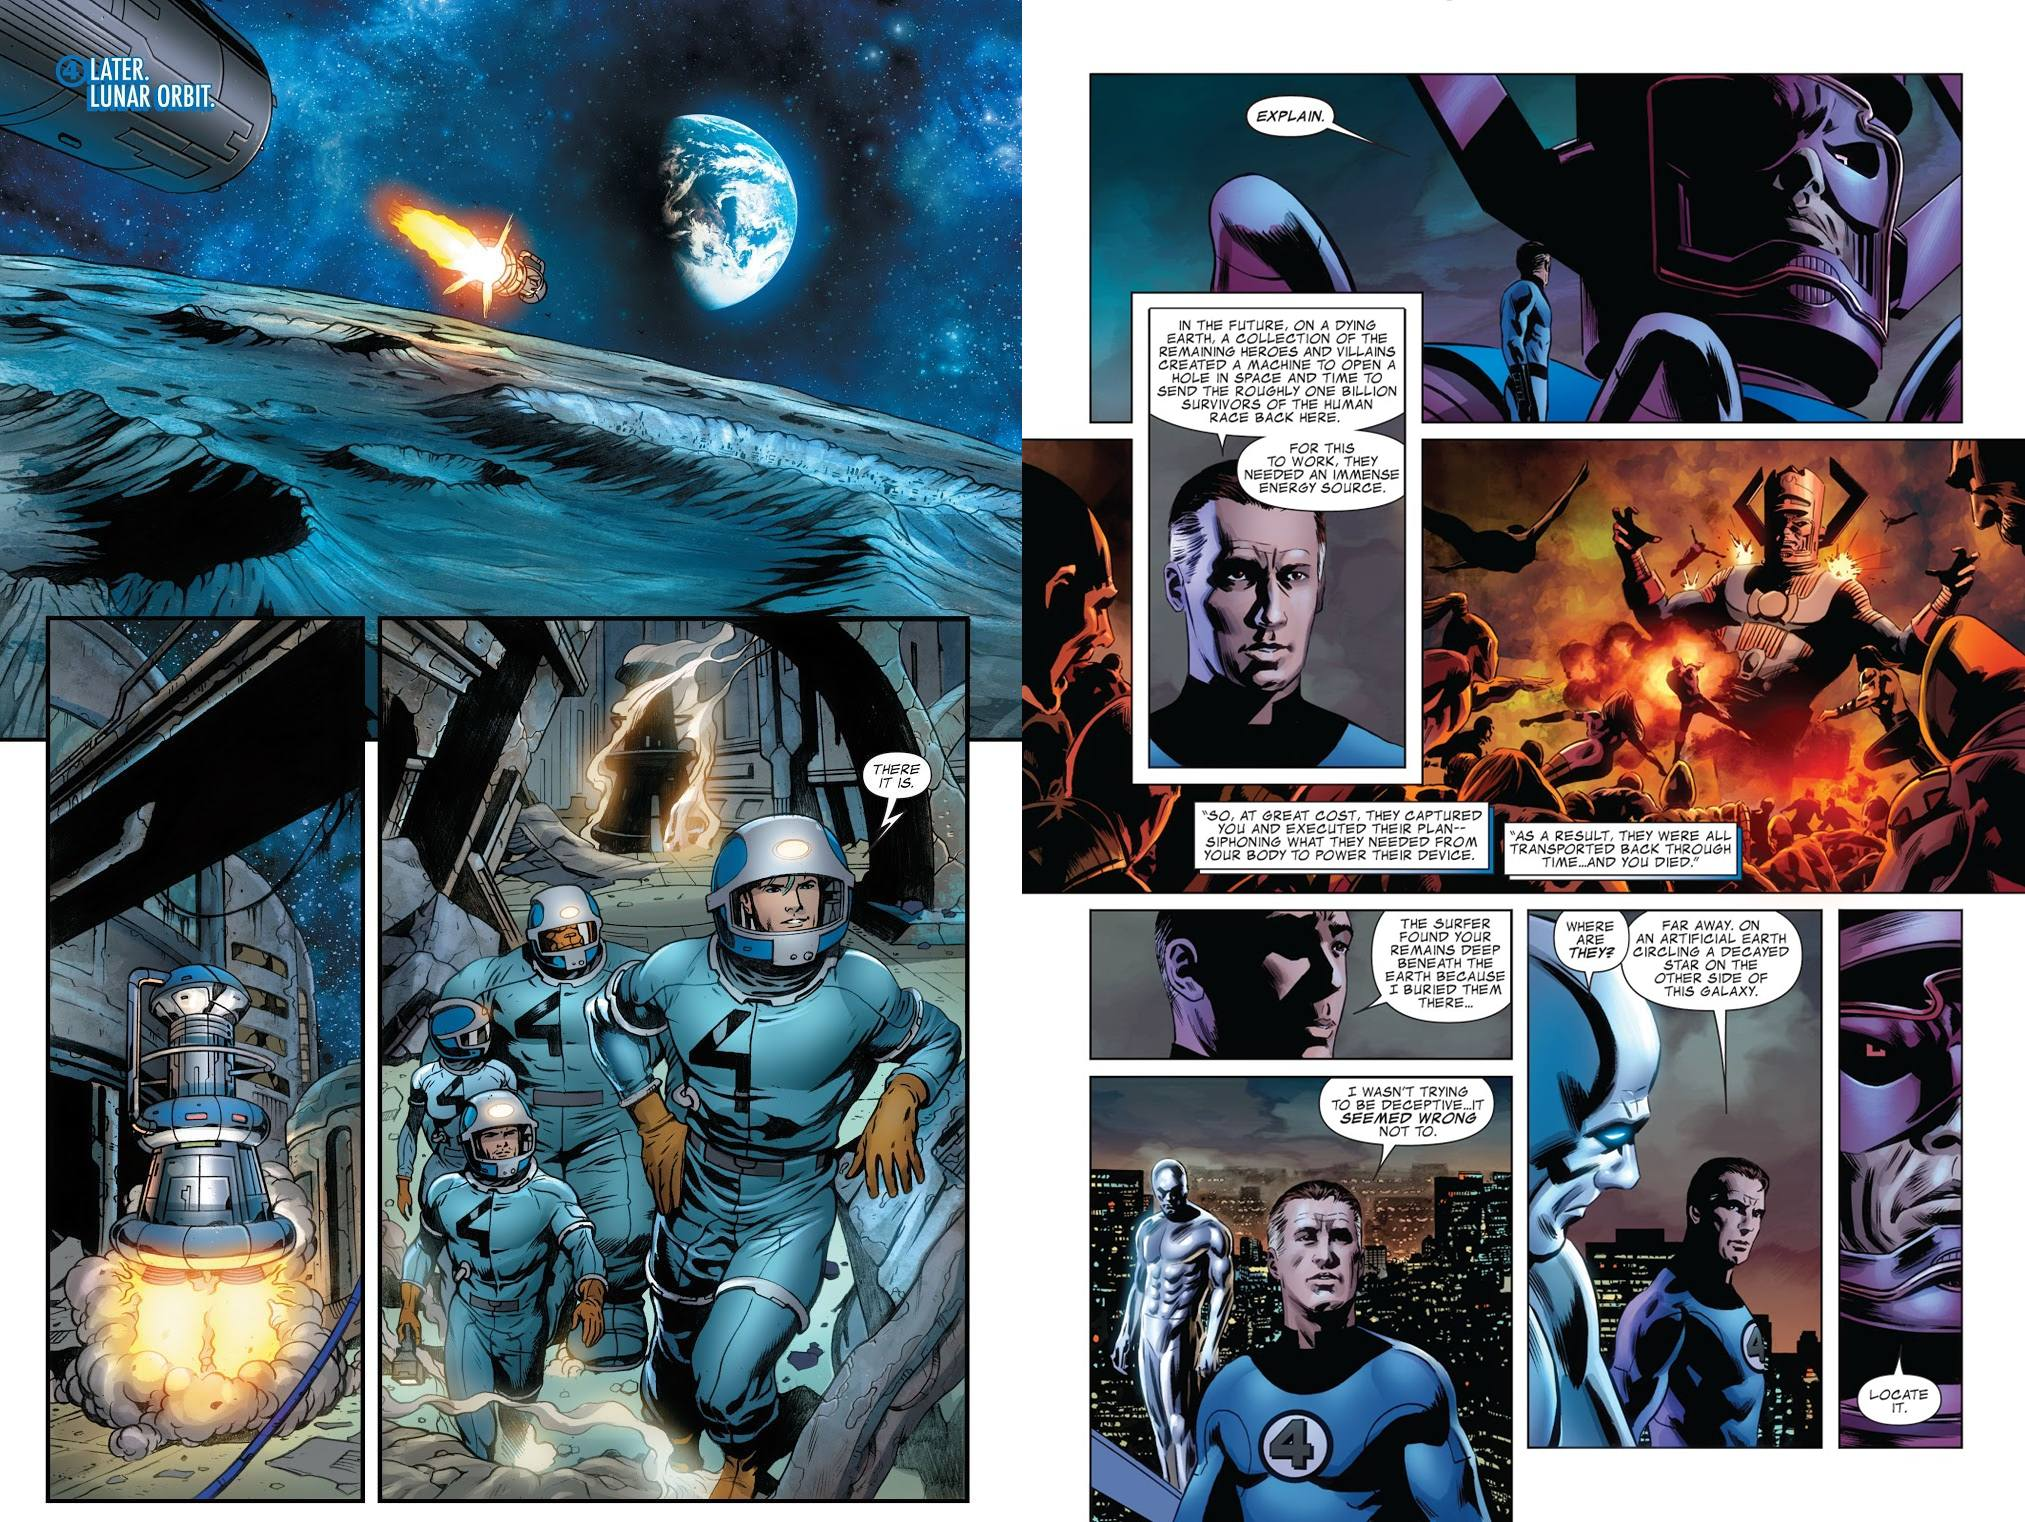 Fantastic Four by Jonathan Hickman Omnibus review